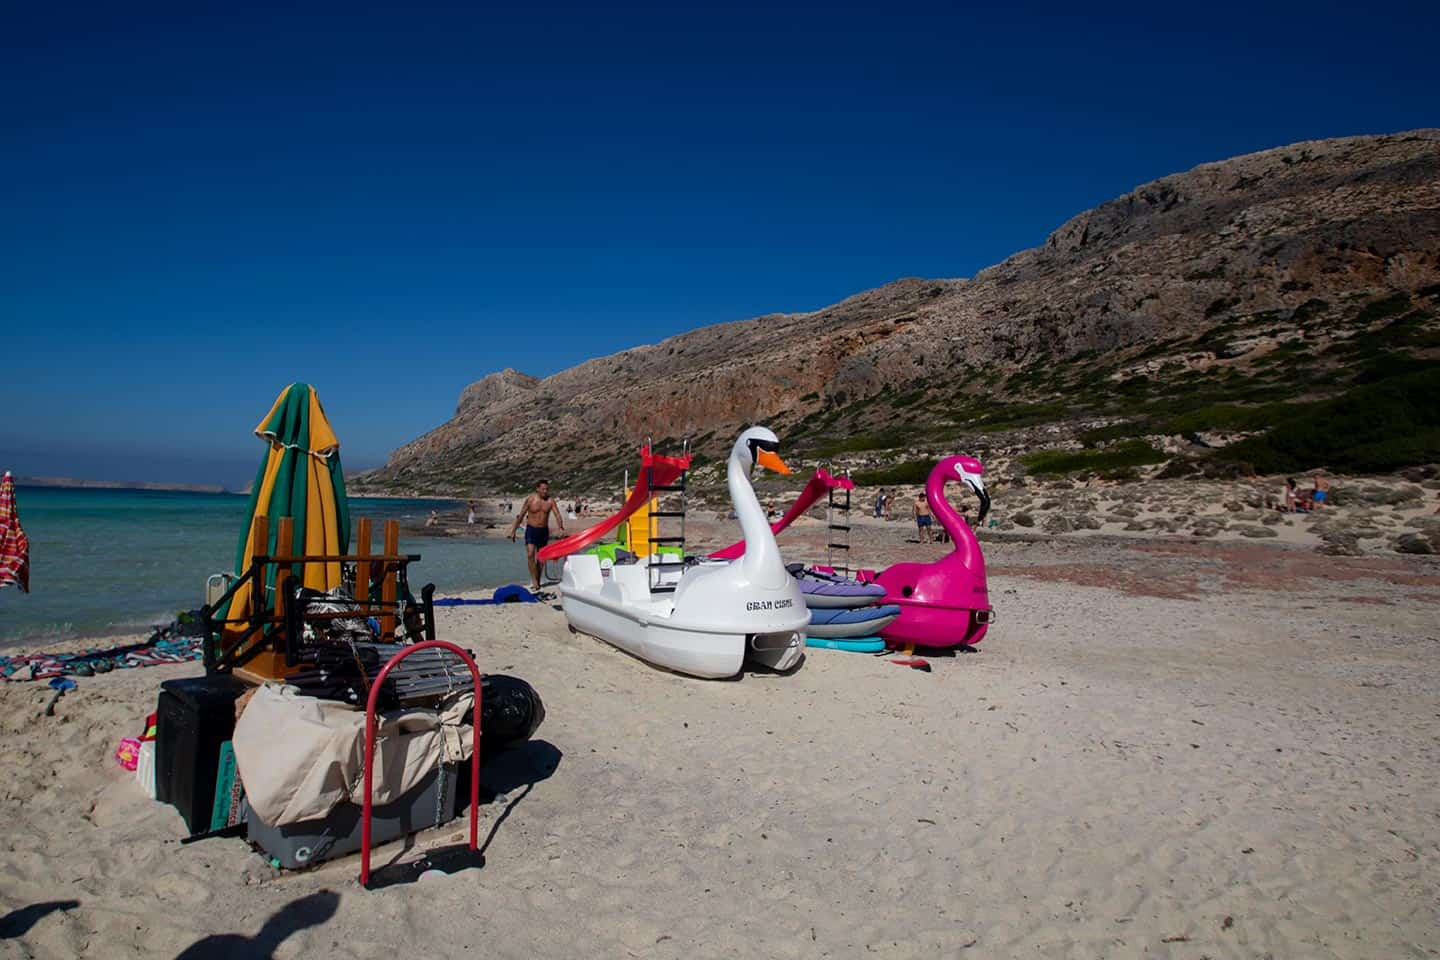 Image of pedalos and beach equipment for hire at Balos Beach on Crete